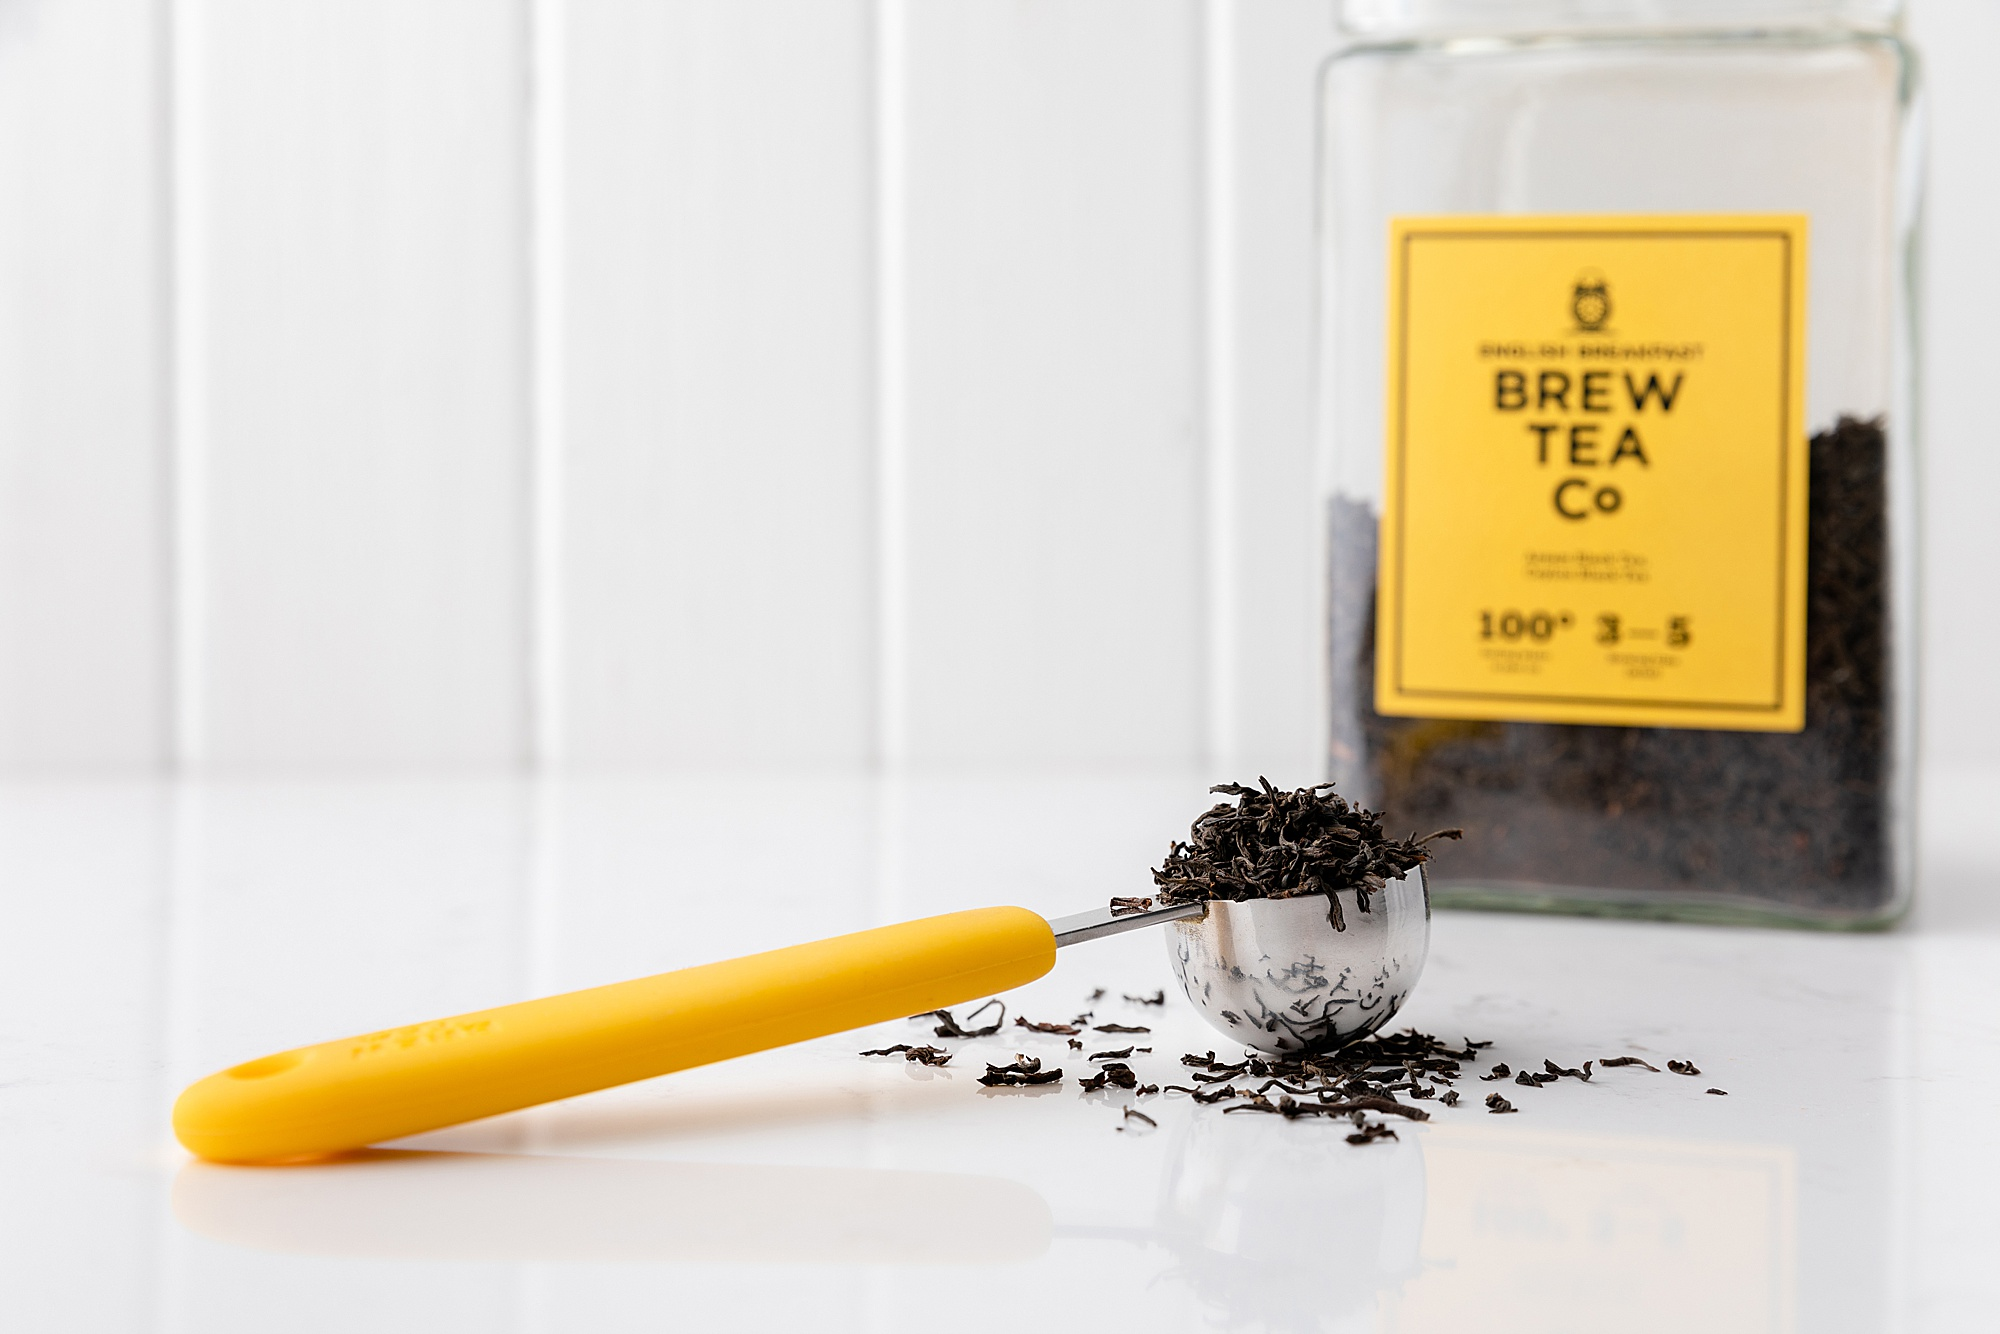 Brew Tea Co by Blue Sky Photography